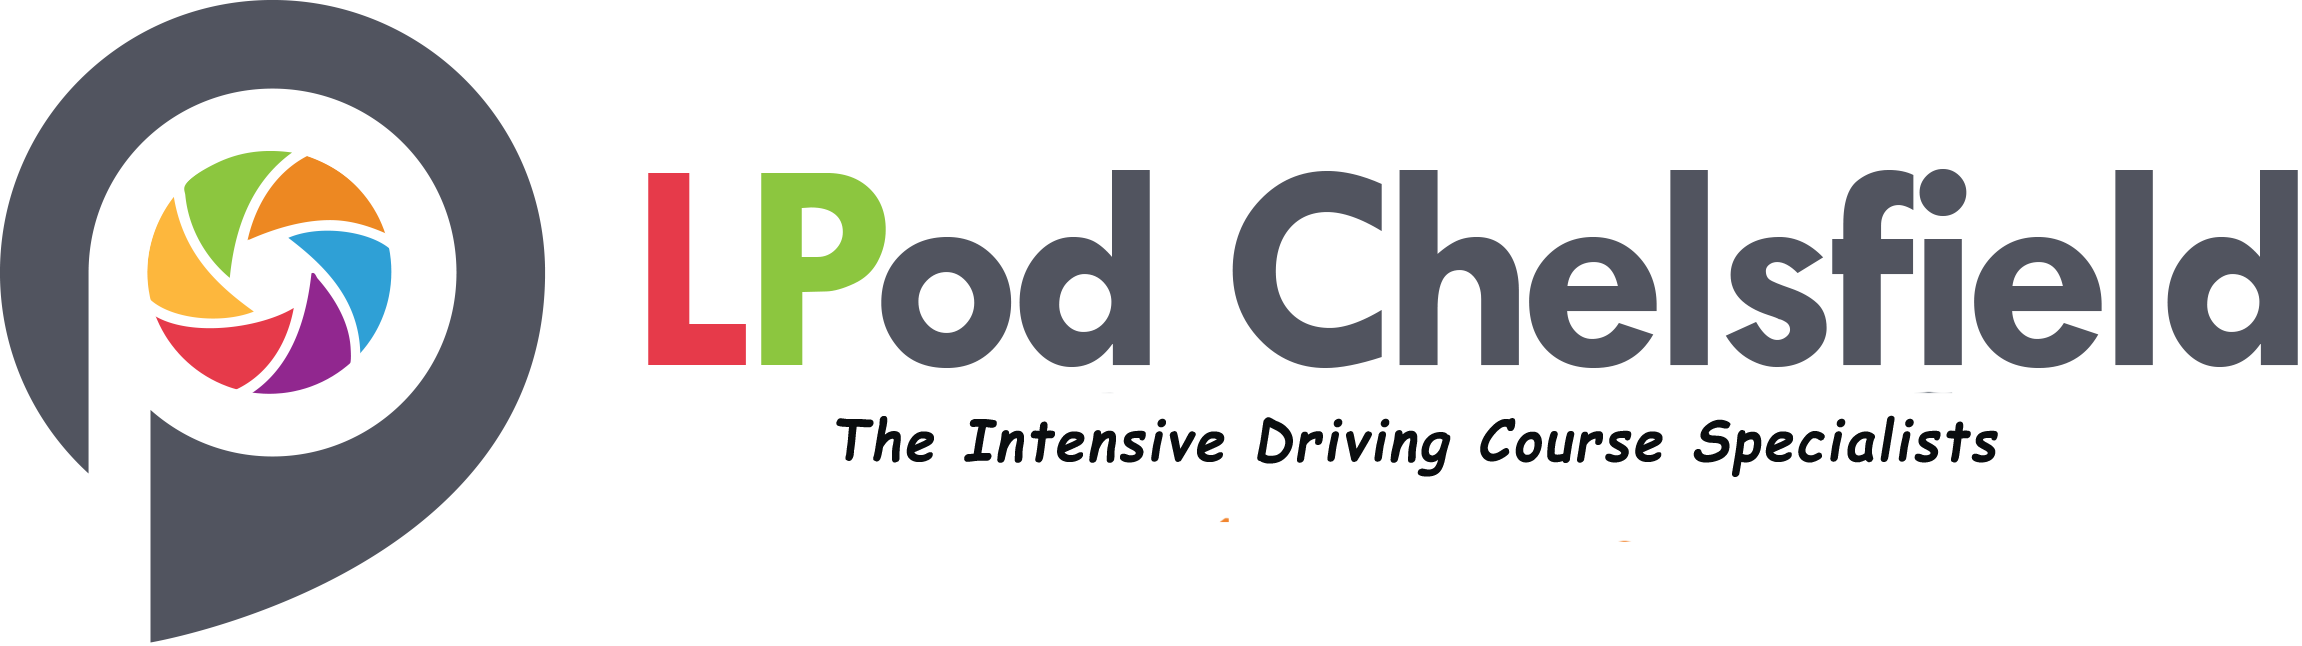 intensive driving courses chelsfield, intensive driving school chelsfield, intensive driving lessons chelsfield, one week driving course chelsfield, fast pass driving chelsfield, crash driving courses chelsfield, driving lessons chelsfield, automatic driving lessons chelsfield,